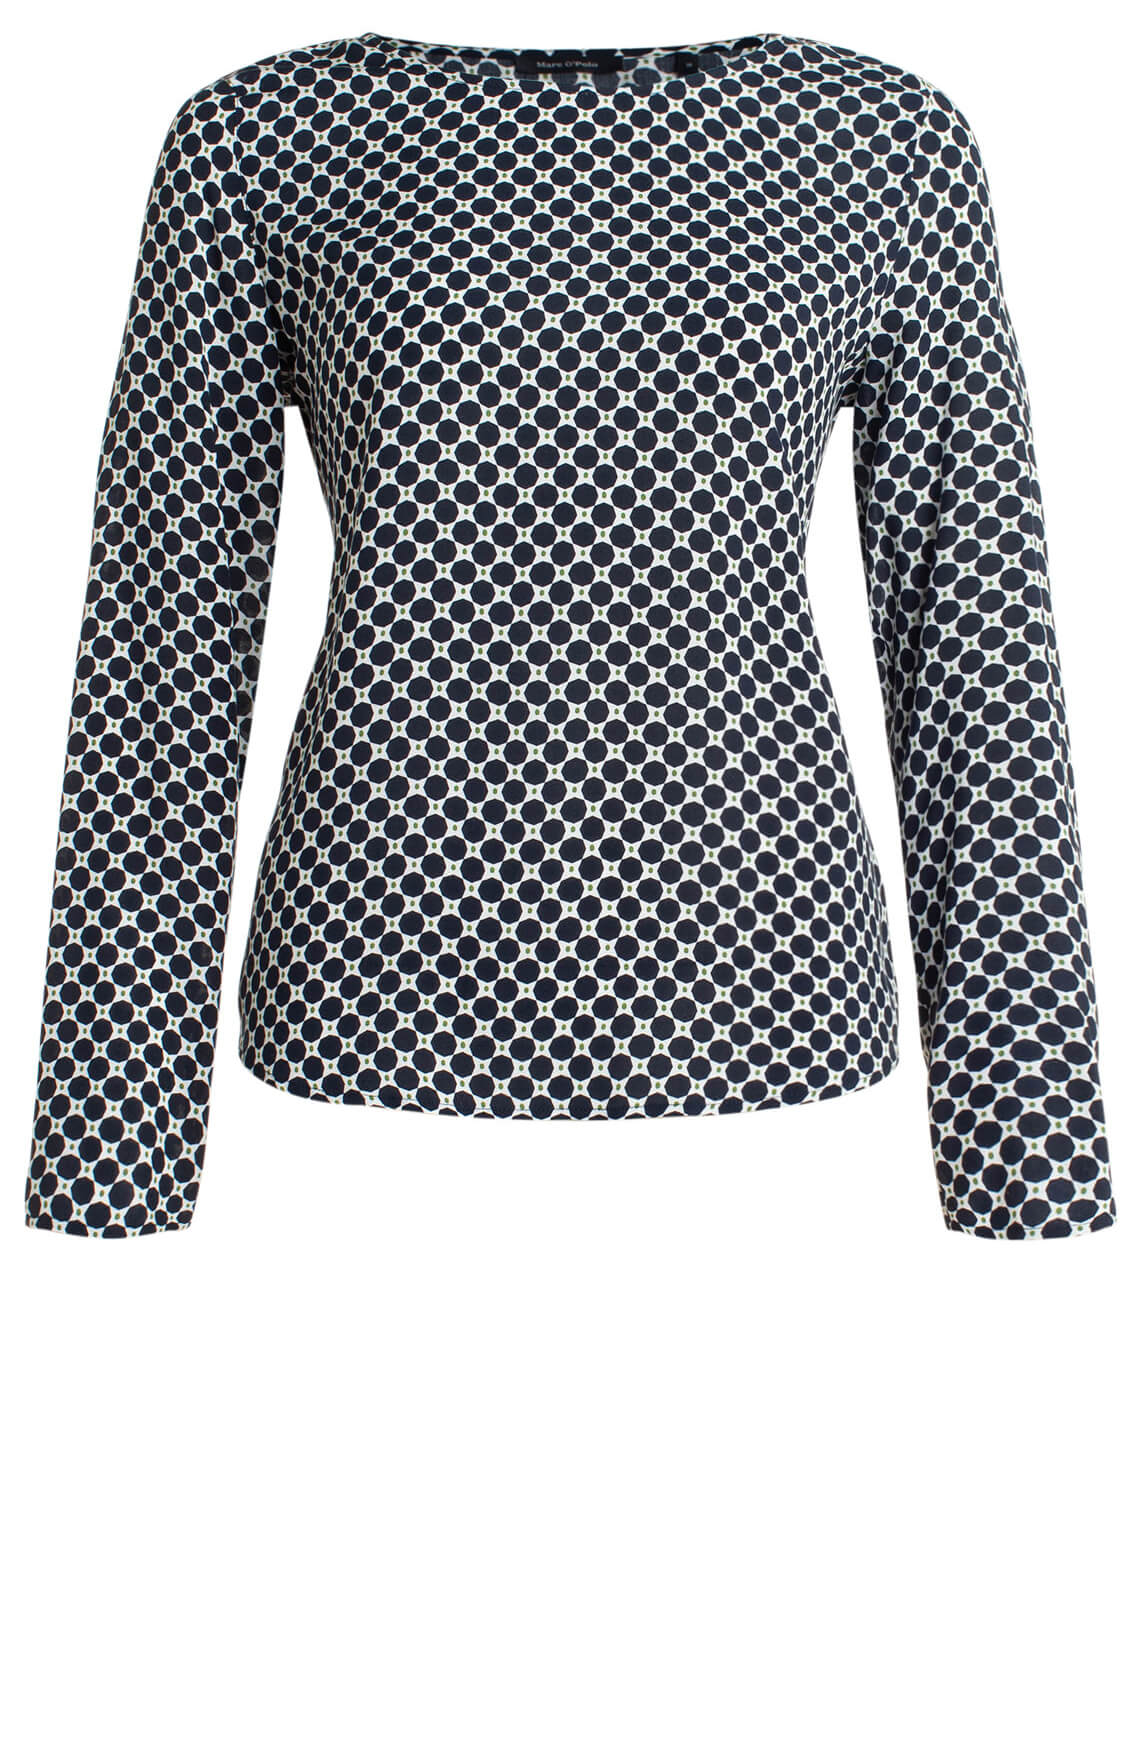 Marc O'Polo Dames Blouse met cirkelprint Blauw